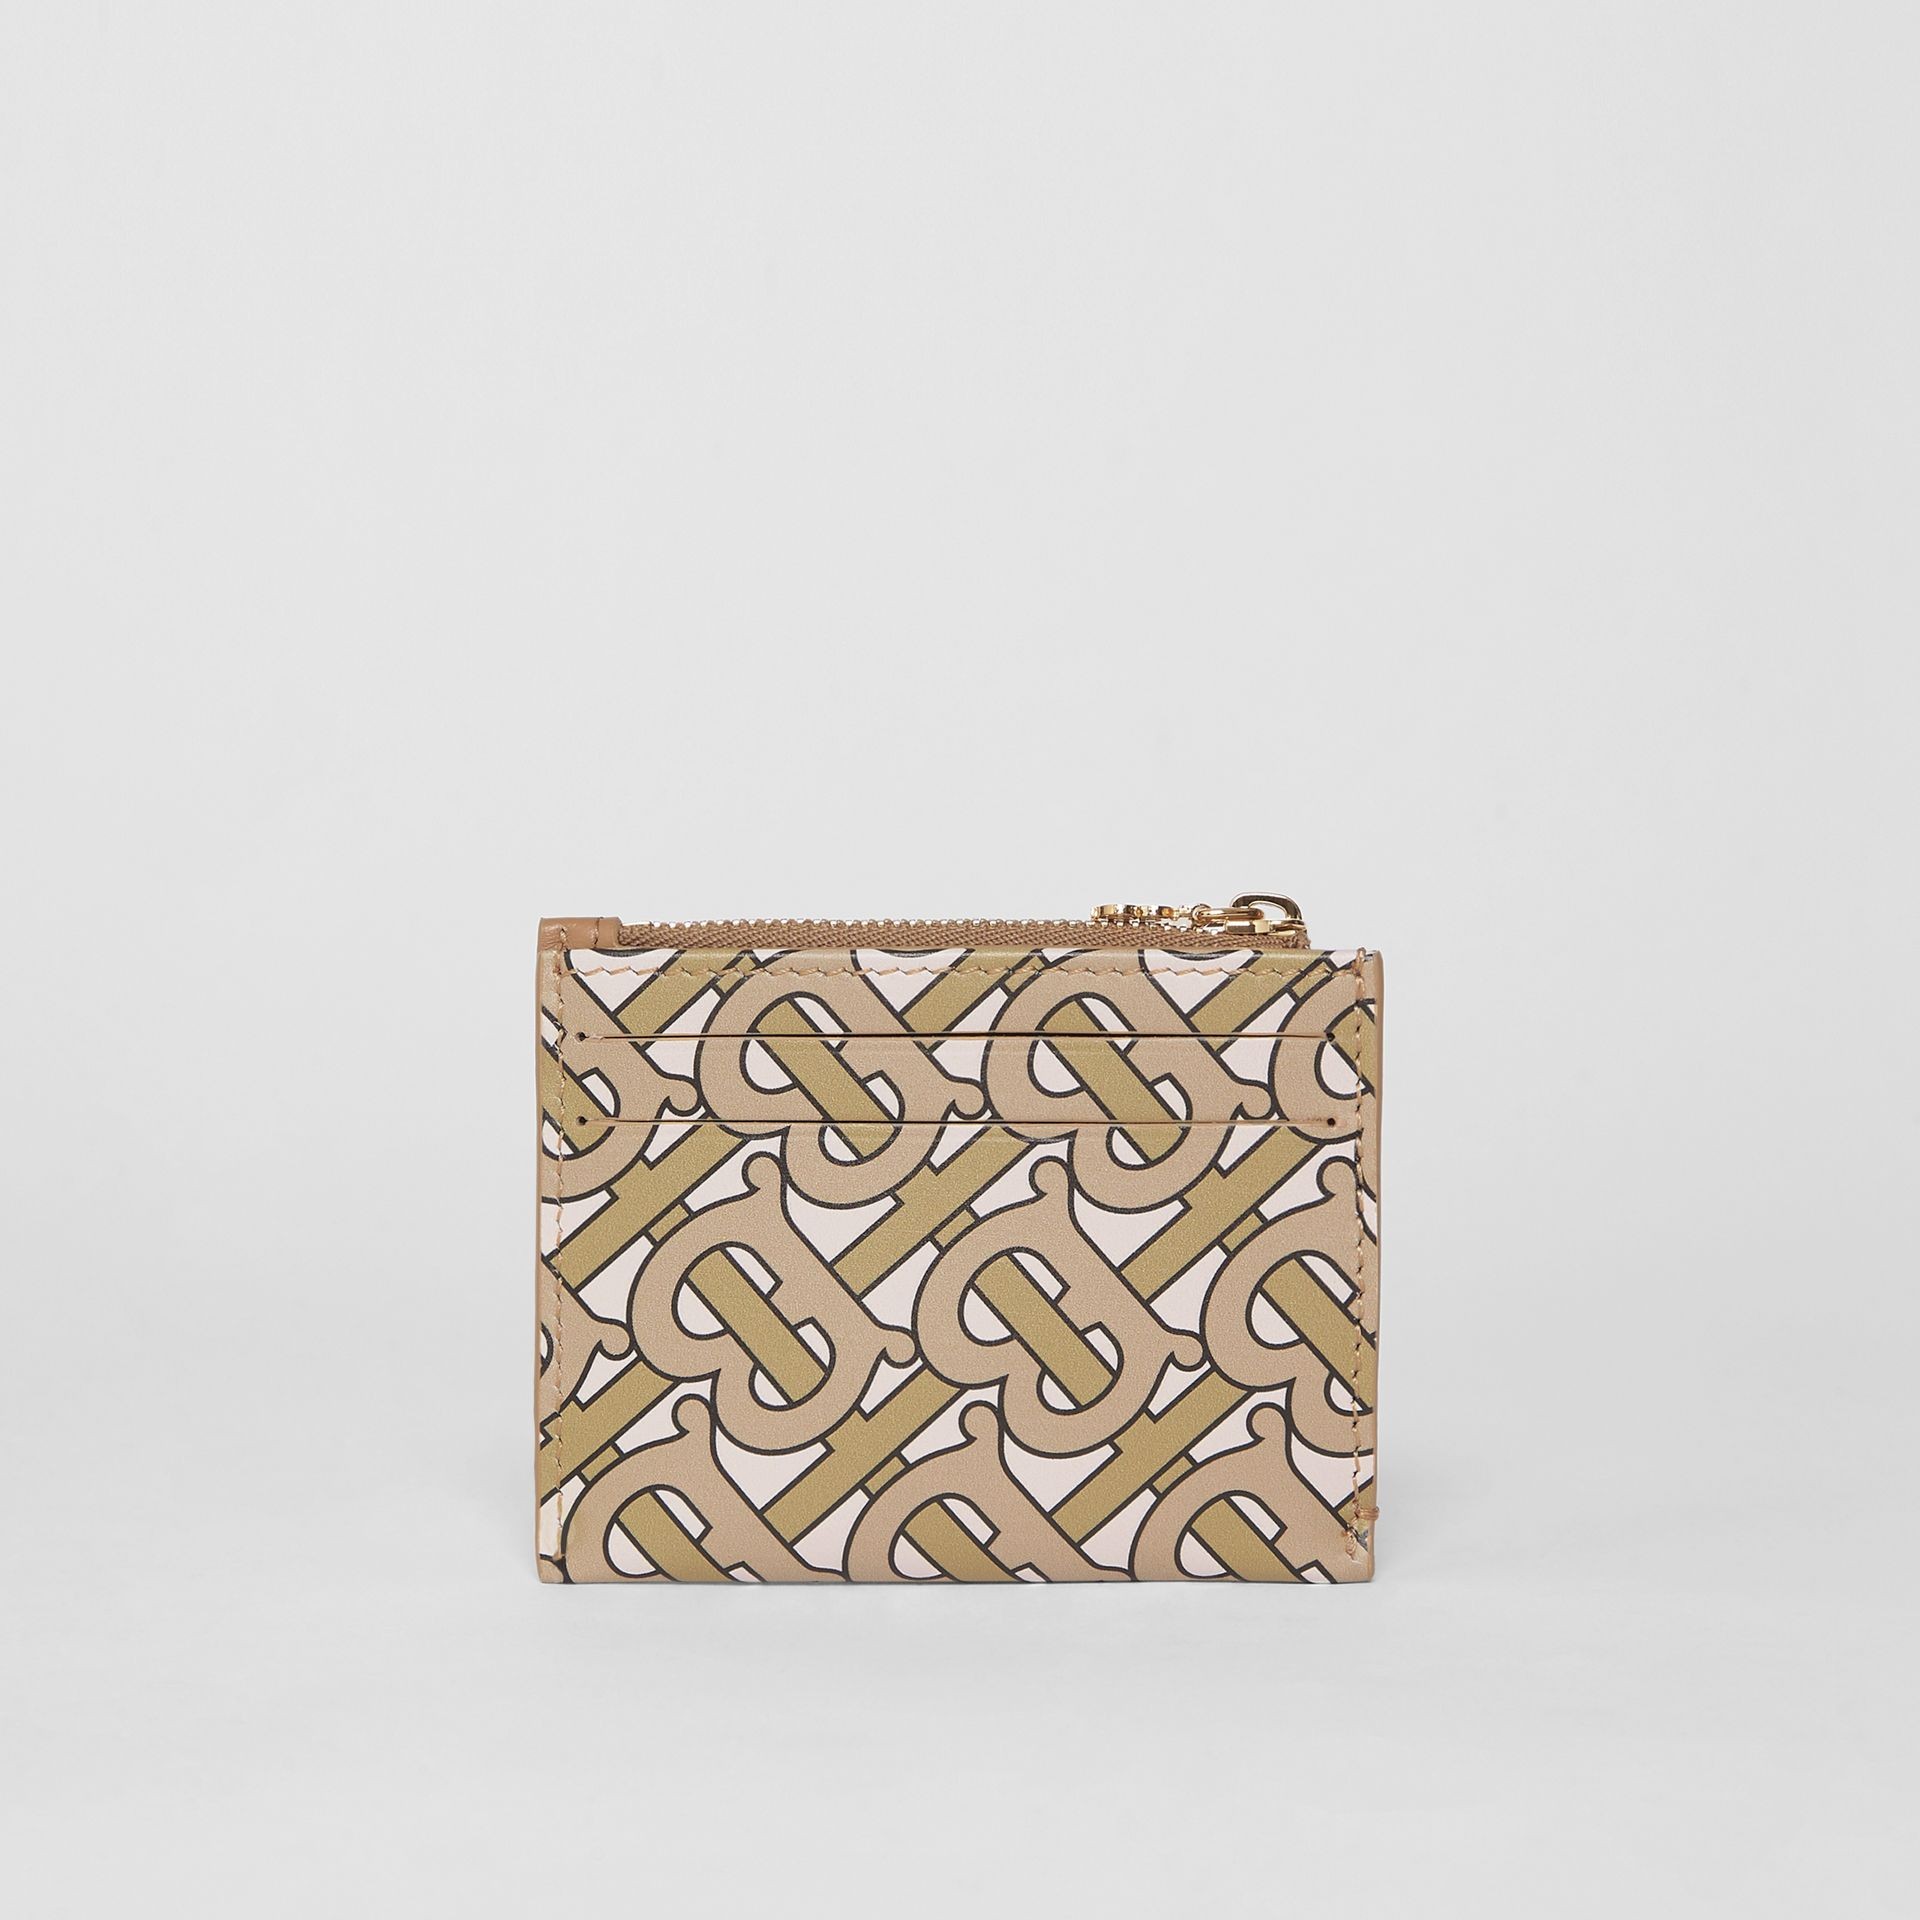 Monogram Print Leather Zip Card Case in Beige - Women | Burberry Singapore - gallery image 4